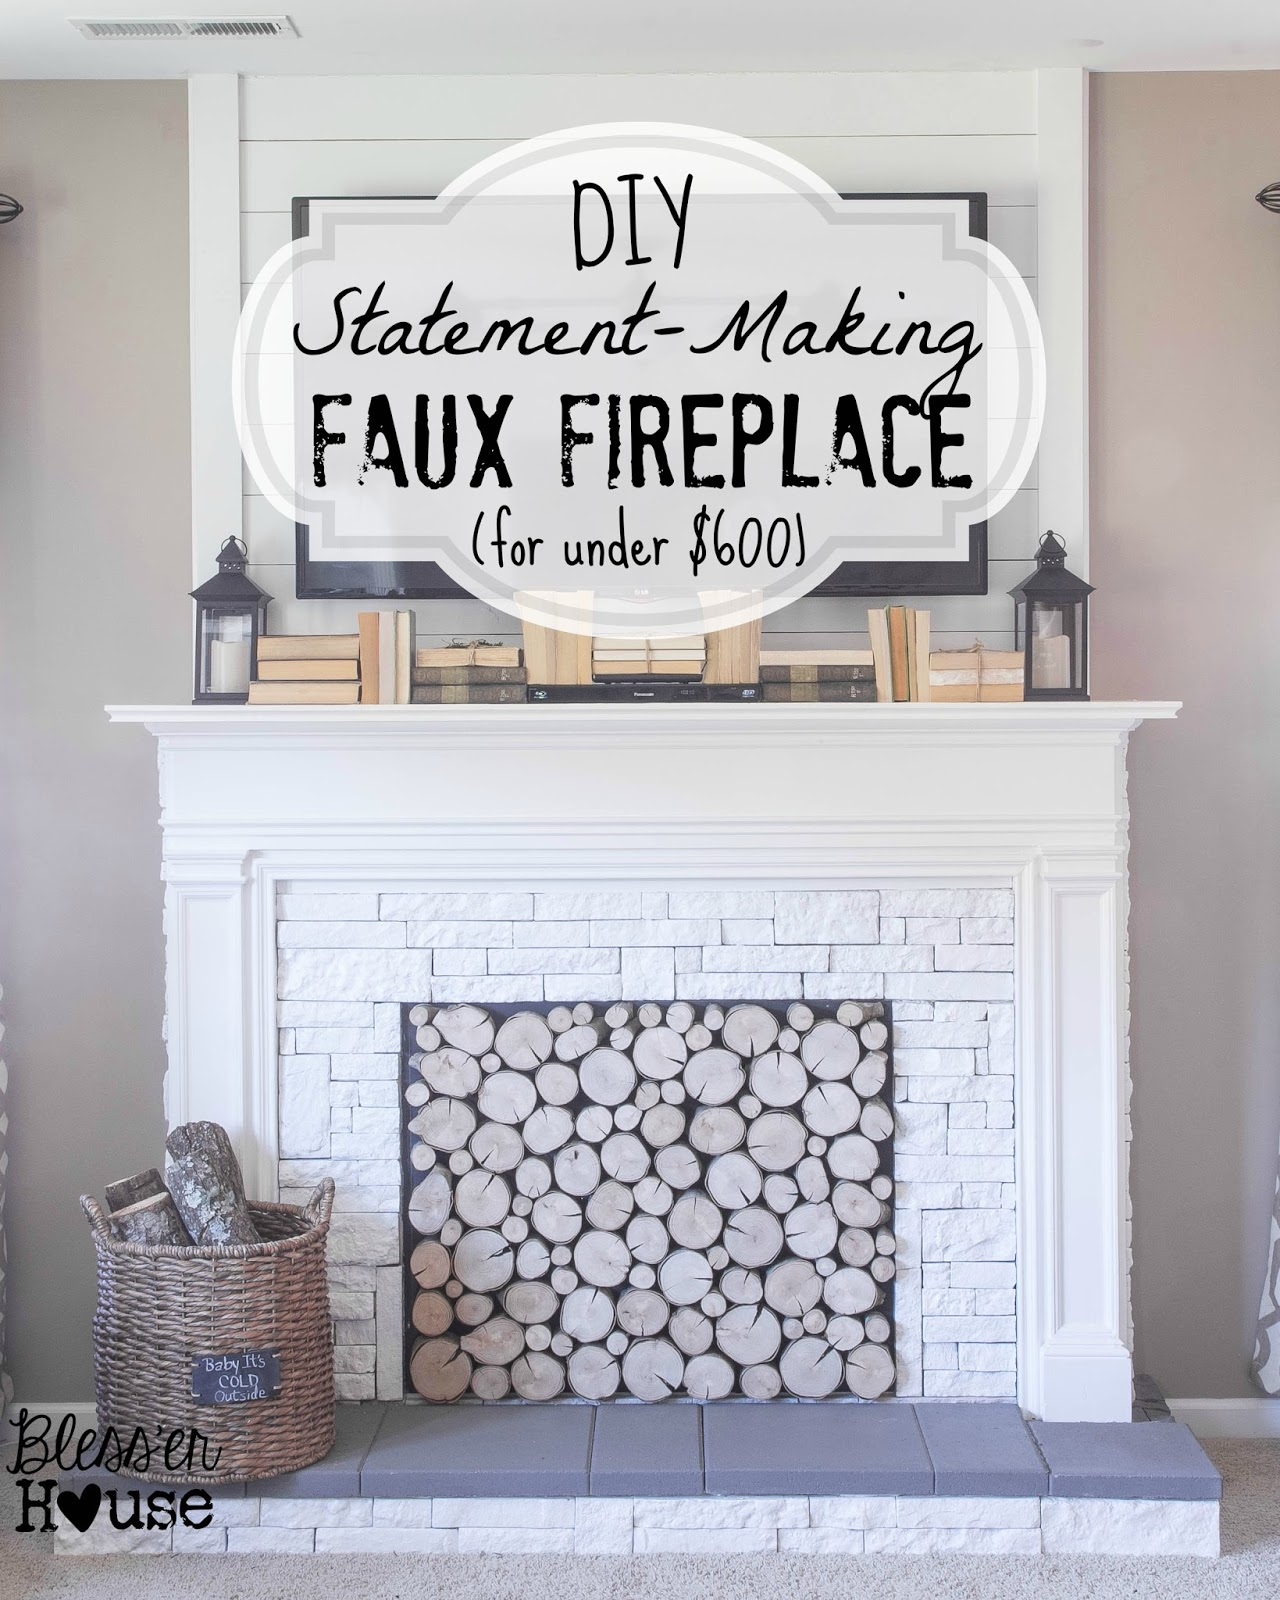 Remodelaholic how to build a faux fireplace and mantel if youve been dying for a fireplace in your home but dont have thousands of dollars in your pocket this is definitely the way to go diy solutioingenieria